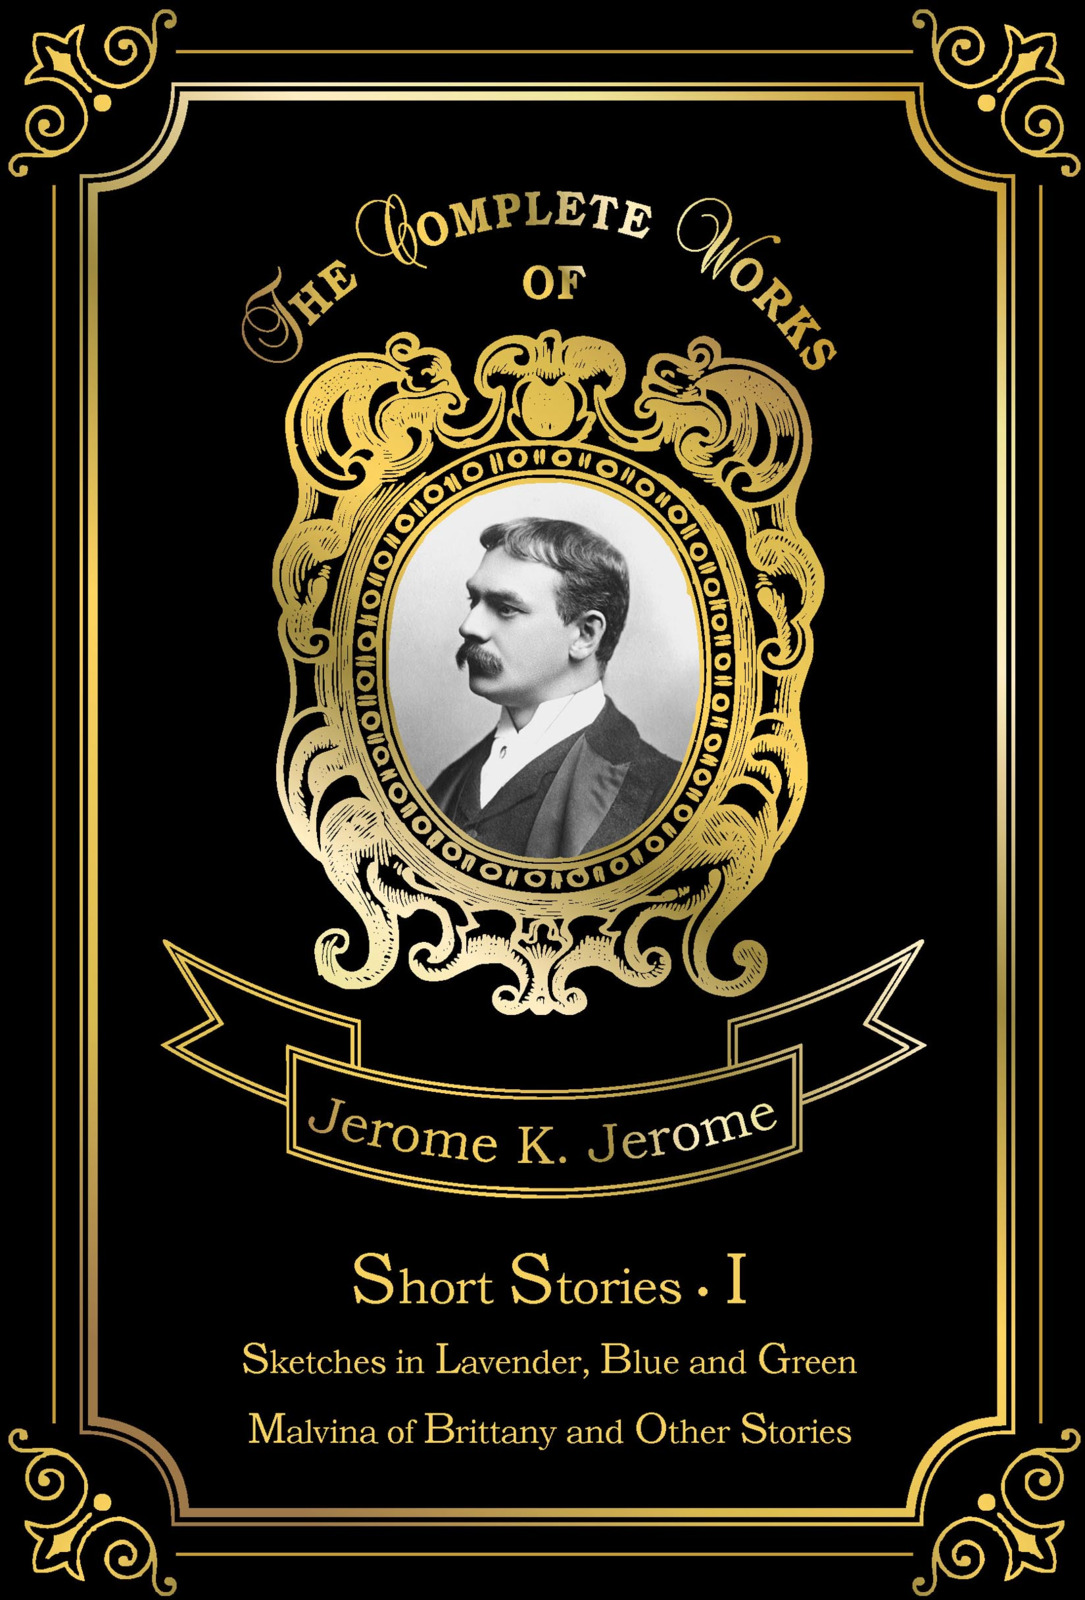 Jerome K. Jerome Short Stories I